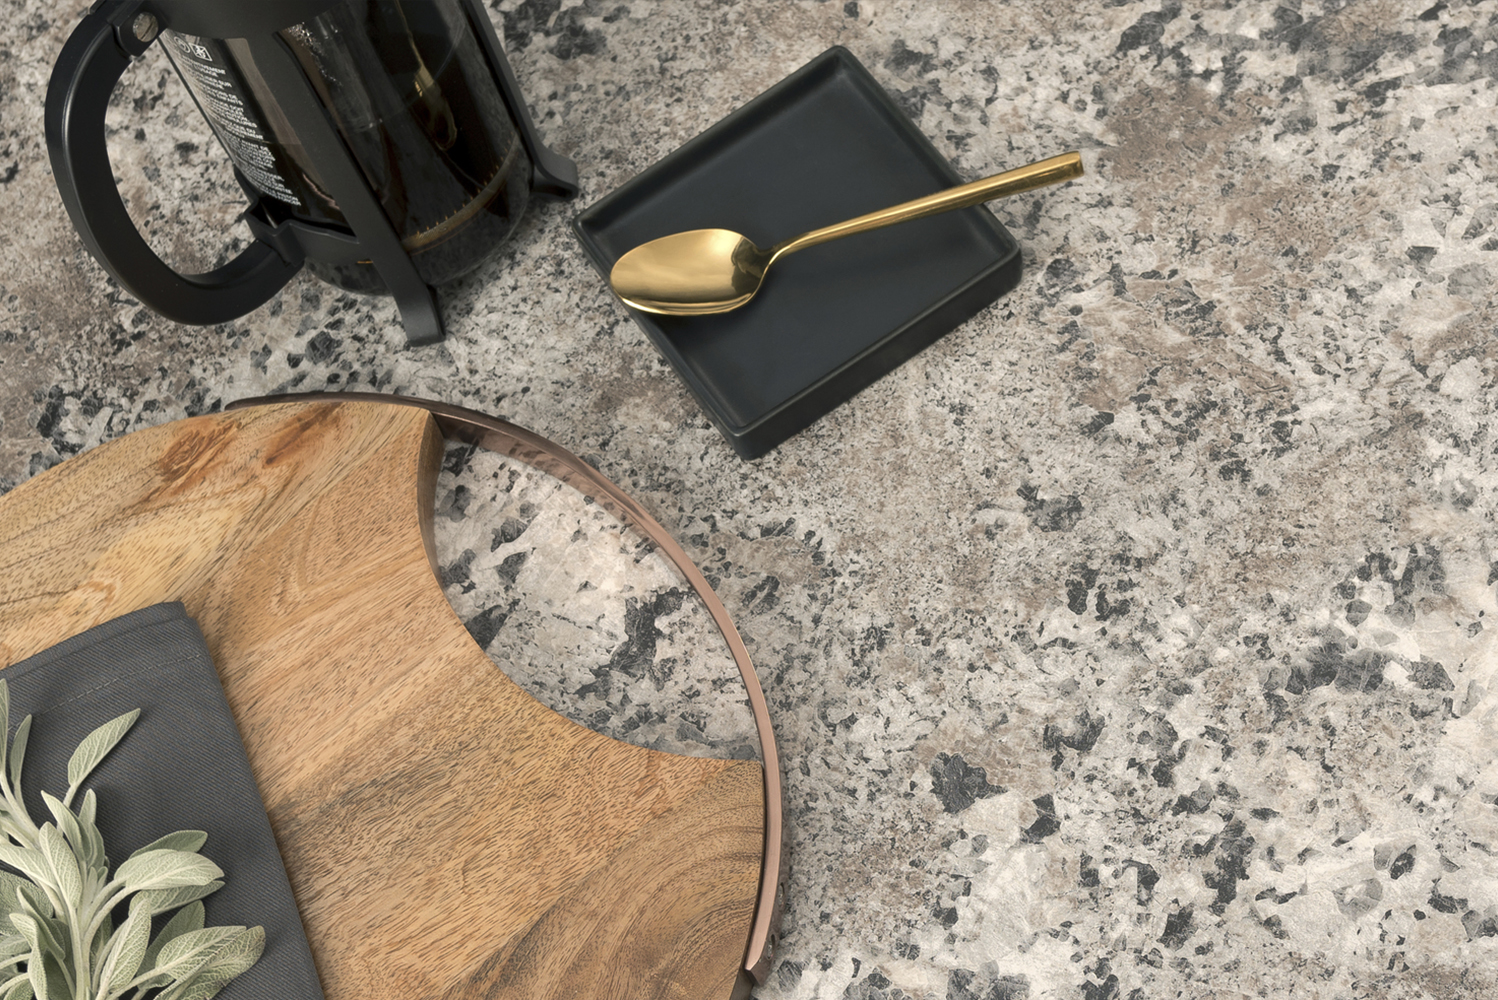 There are also offerings in large-scale white marble design with grey, brown and bronze veining.